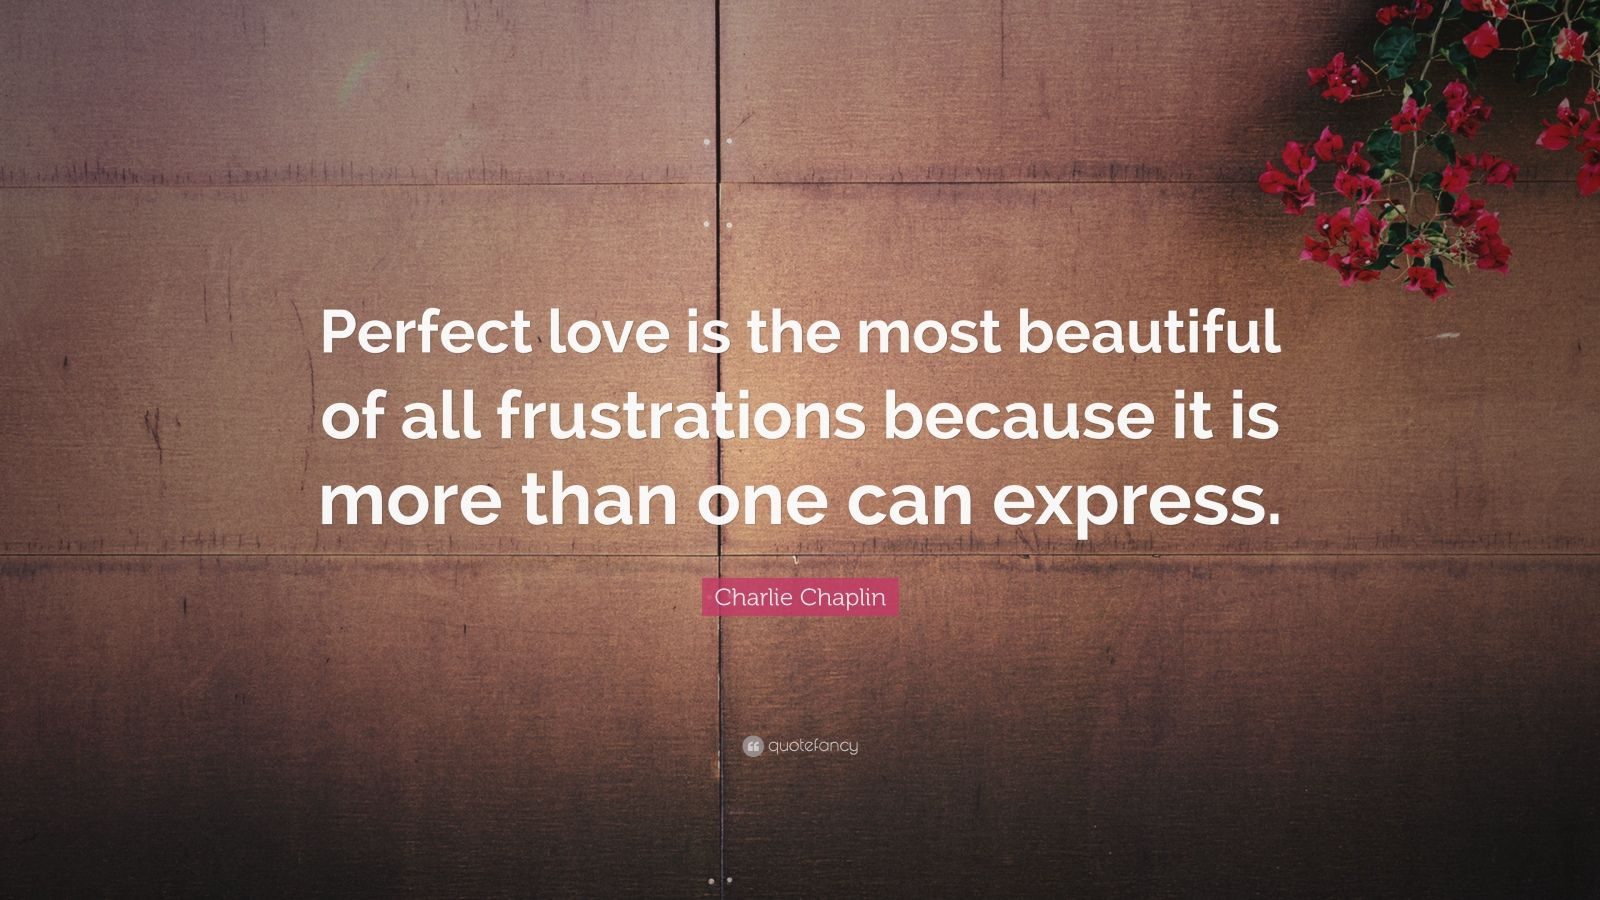 charlie chaplin Quote: ?Perfect love is the most beautiful of all frustrations because it is ...